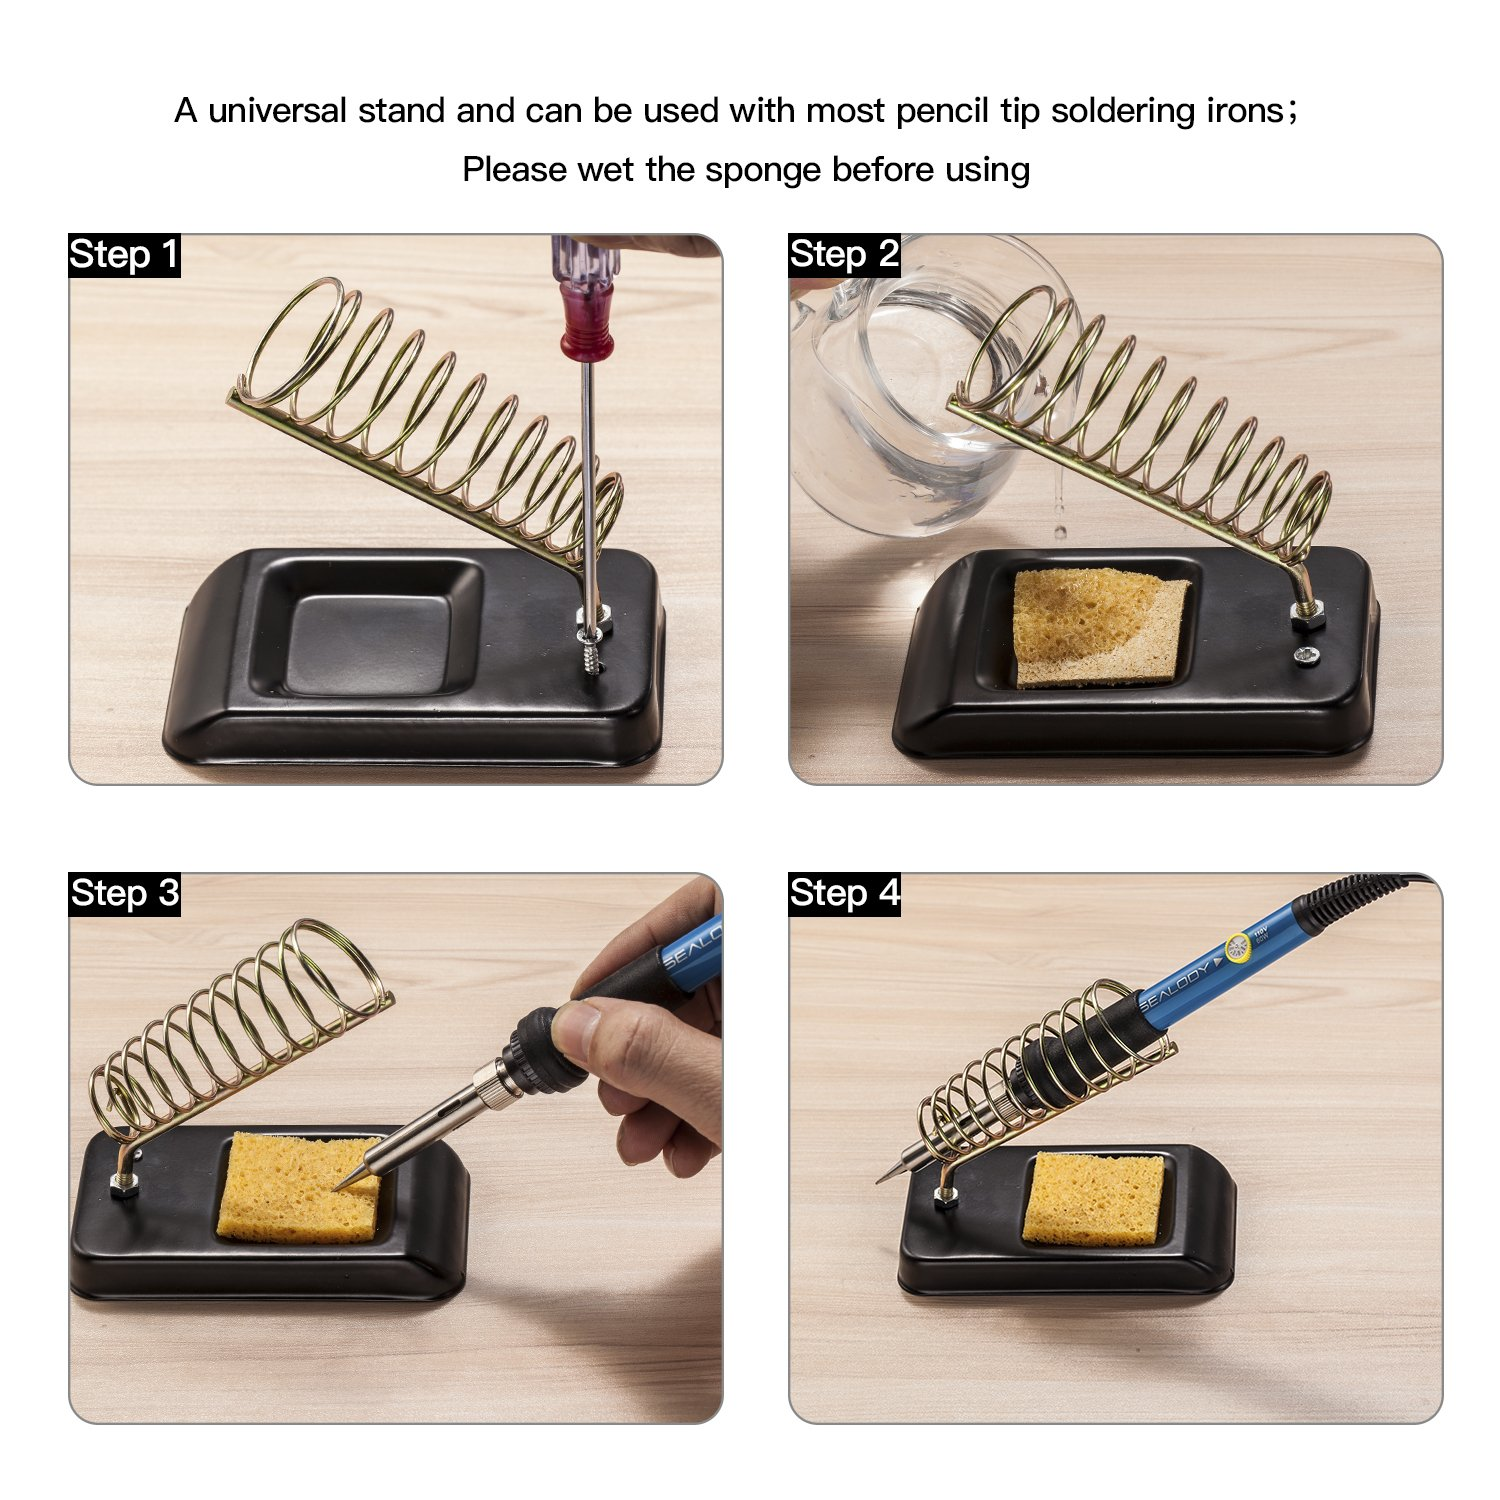 Soldering Iron Kit, Including 60W Temperature Control Soldering Iron with ON/OFF Switch, Tips, Solder Sucker, Desoldering Wick, Solder Wire, Anti-static Tweezers and Stand with Cleaning Sponge